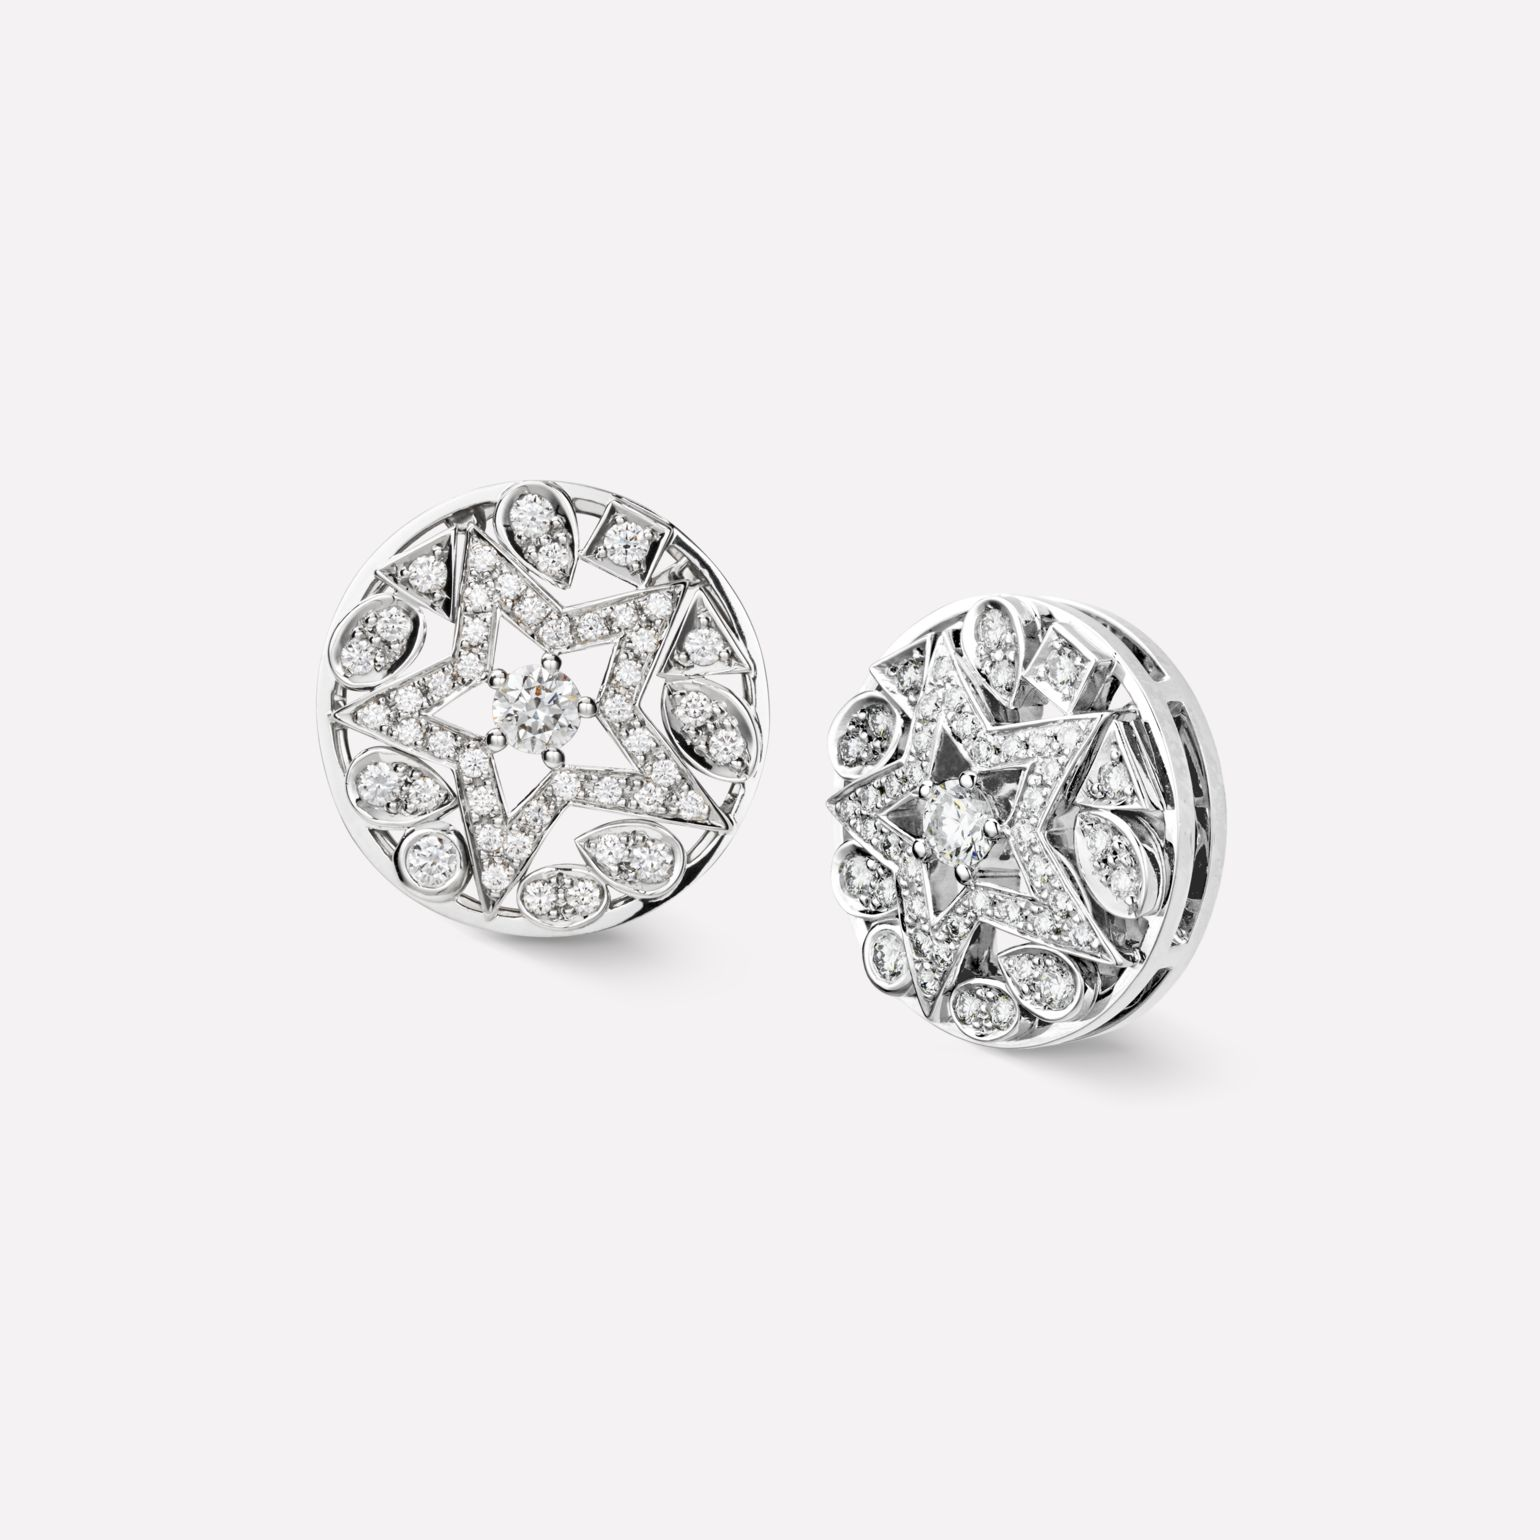 Comète Earrings Round star earrings in 18K white gold, diamonds and central diamond